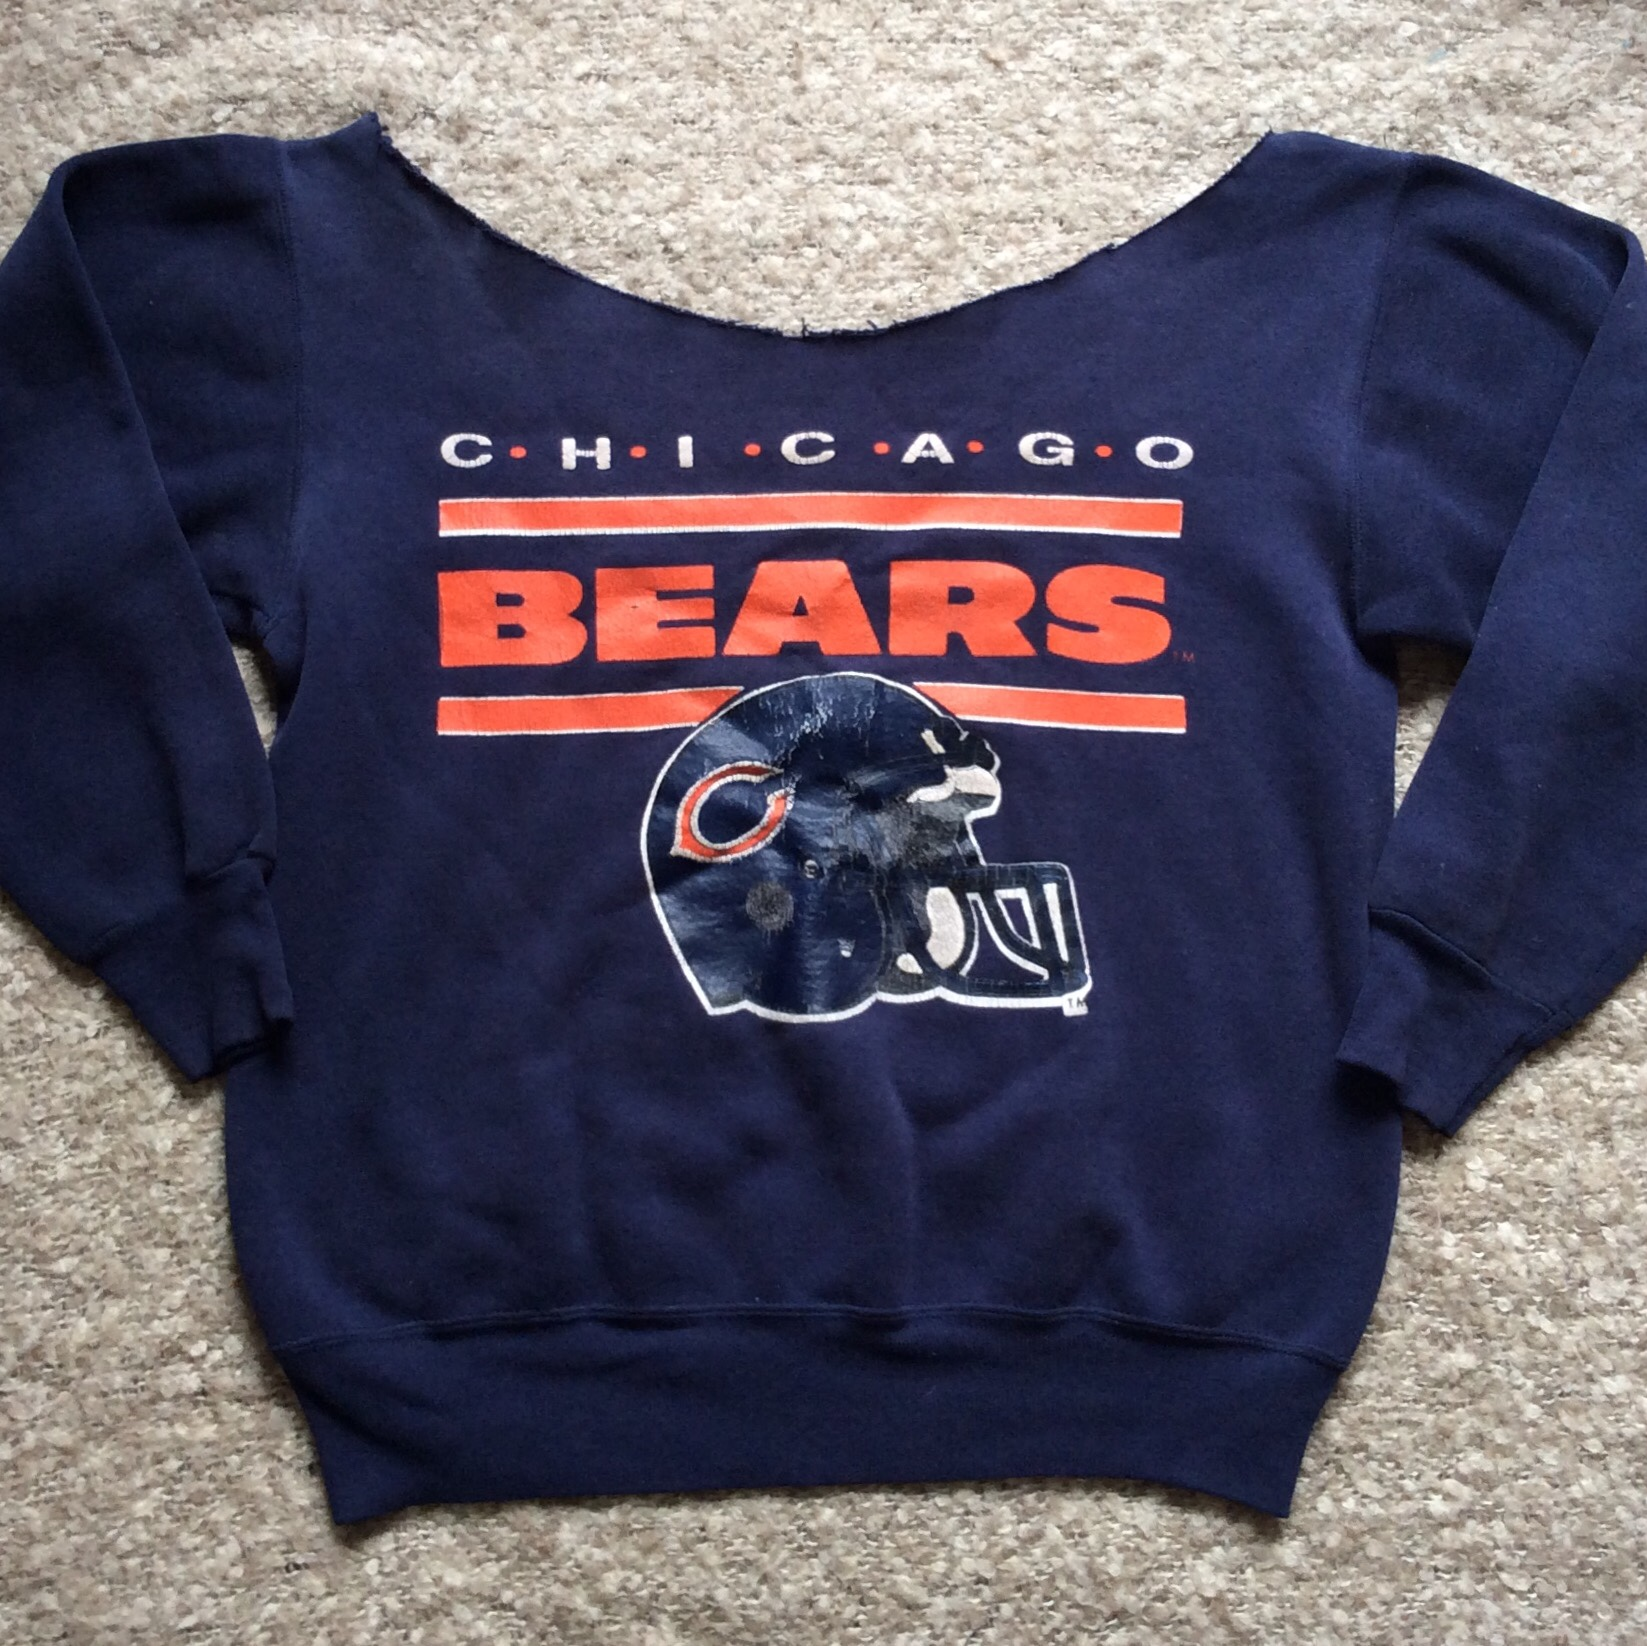 new styles 4ad6a 9f371 🏈 NFL Chicago Bears Jersey 🏈 Football sweater -... - Depop